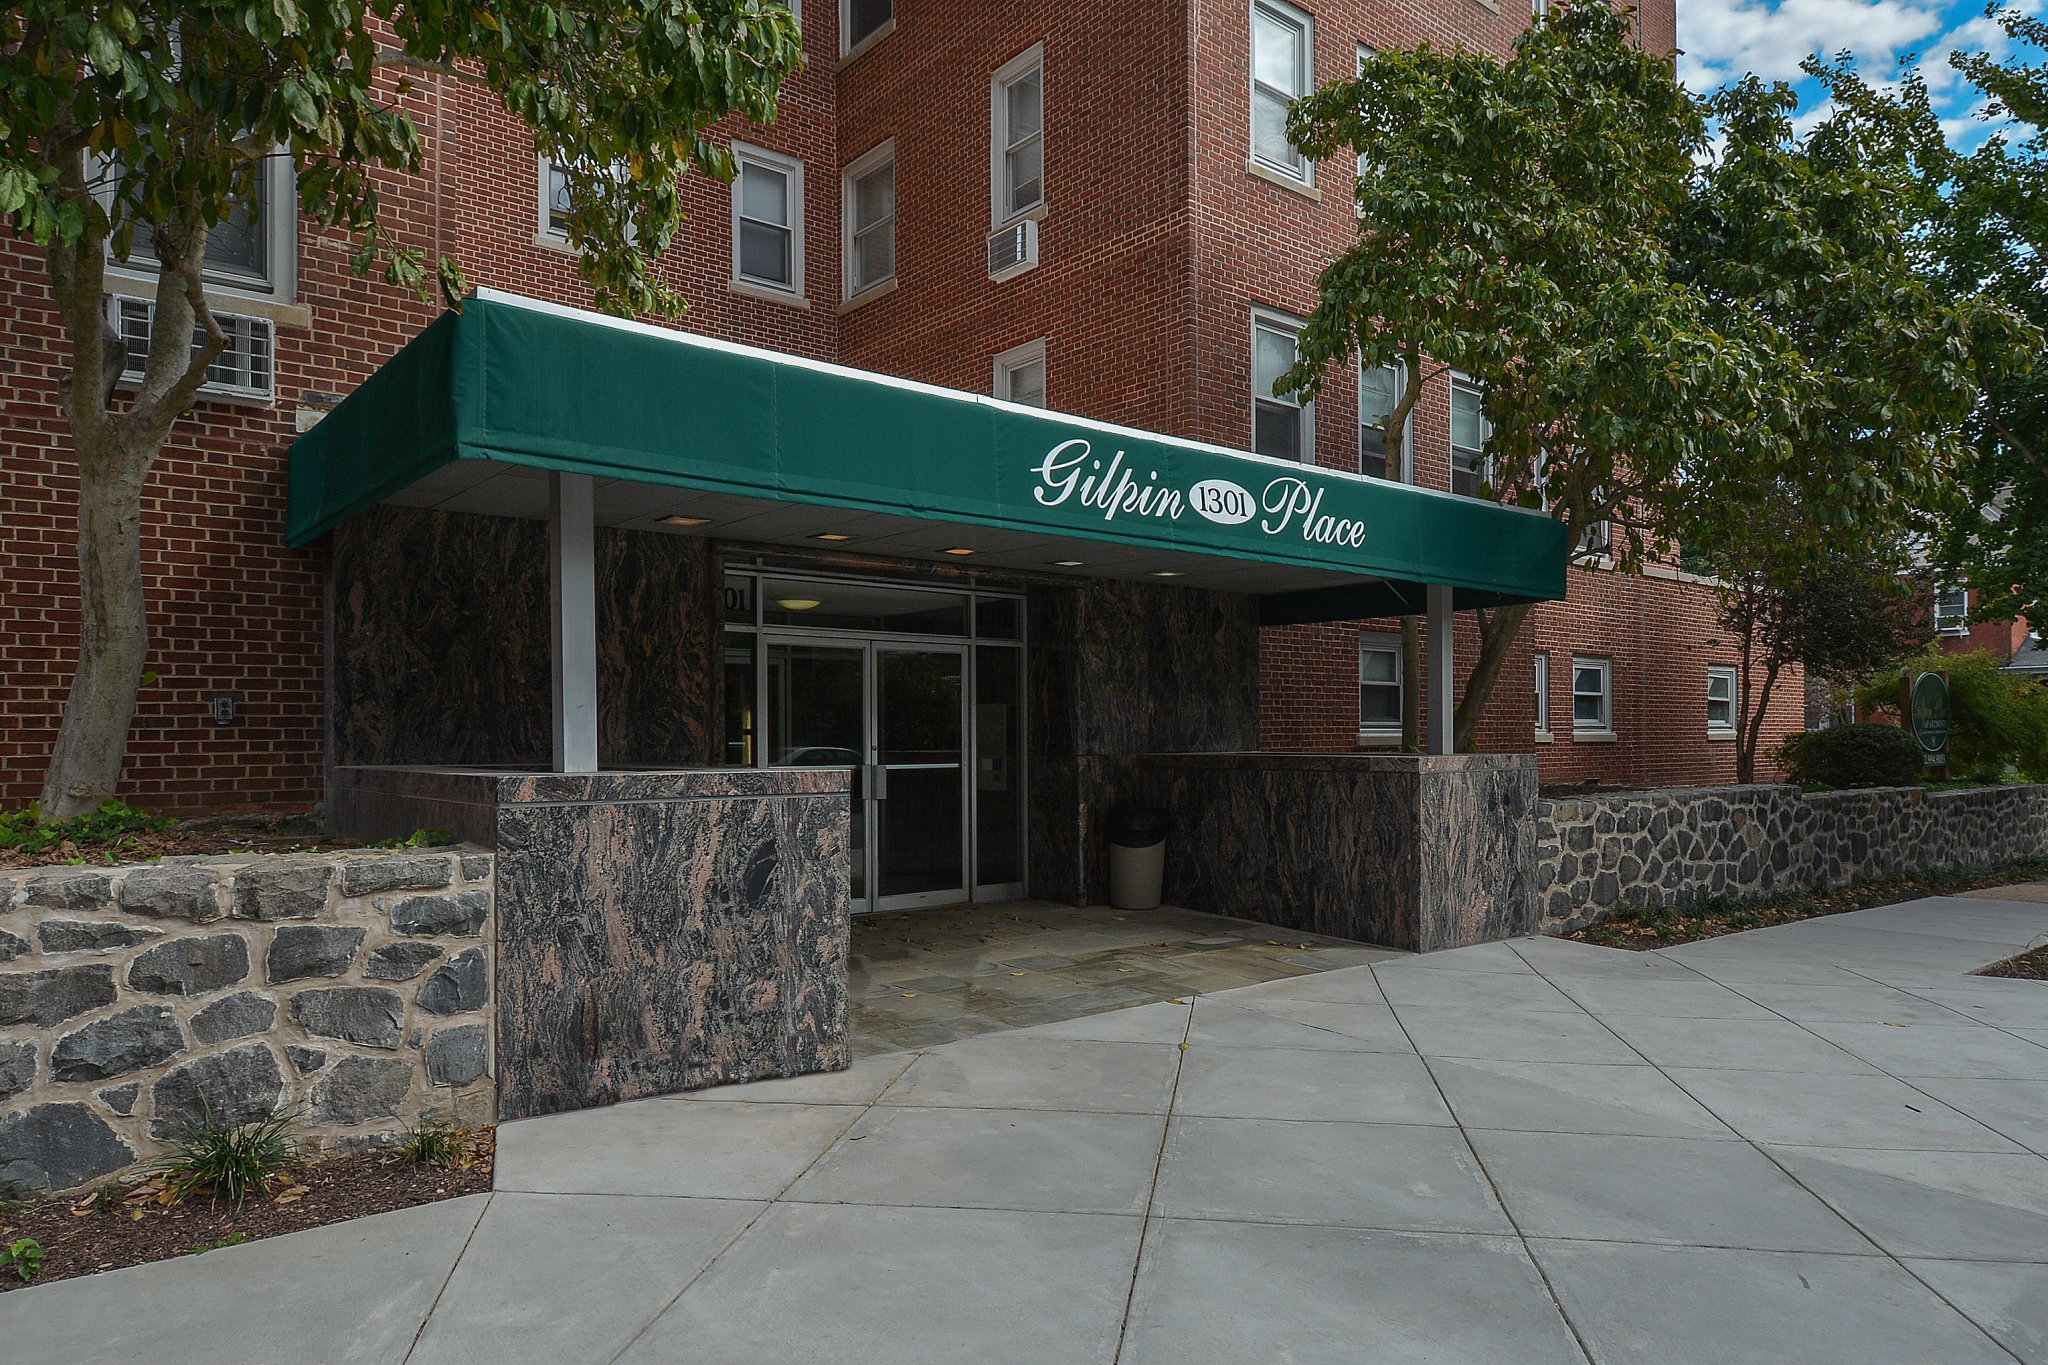 Gilpin Place Apartments image 2